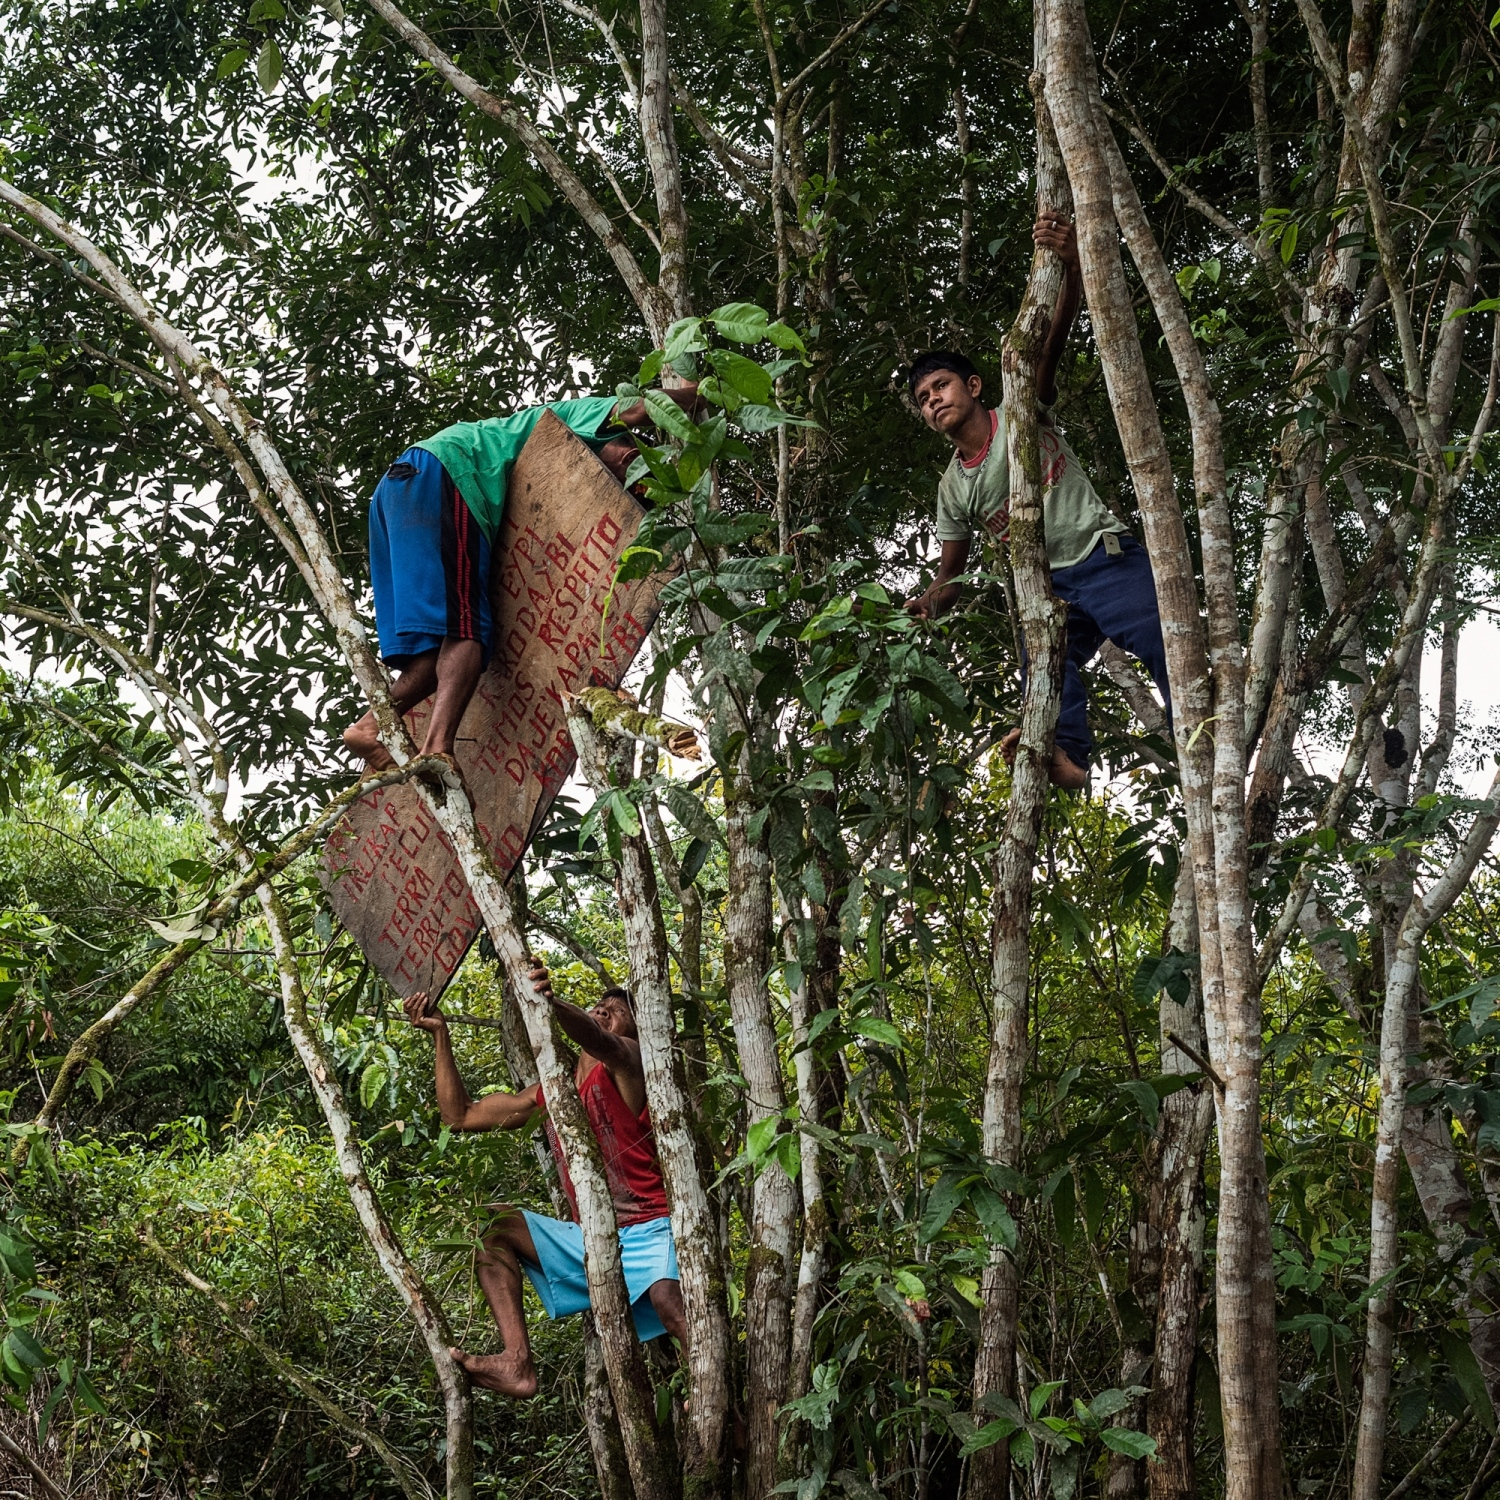 December 08, 2014.  Munduruku warriors hang a sign notifying outsiders to respect their territory while self demarcating their land on the Tapajos River. After years of fighting, the Munduruku were successful in lobbying the government to offically recognize their traiditonal territory with a demarcation. This recognition forced IBAMA, Brazil's Environmental Agency, to suspend the environmental licensing process for the 12,000 megawatt Tapajós hydroelectric complex, due to the unconstitutional flooding of their now recognized land. But the fight continues as 40 more dams are still planned for the river basin.